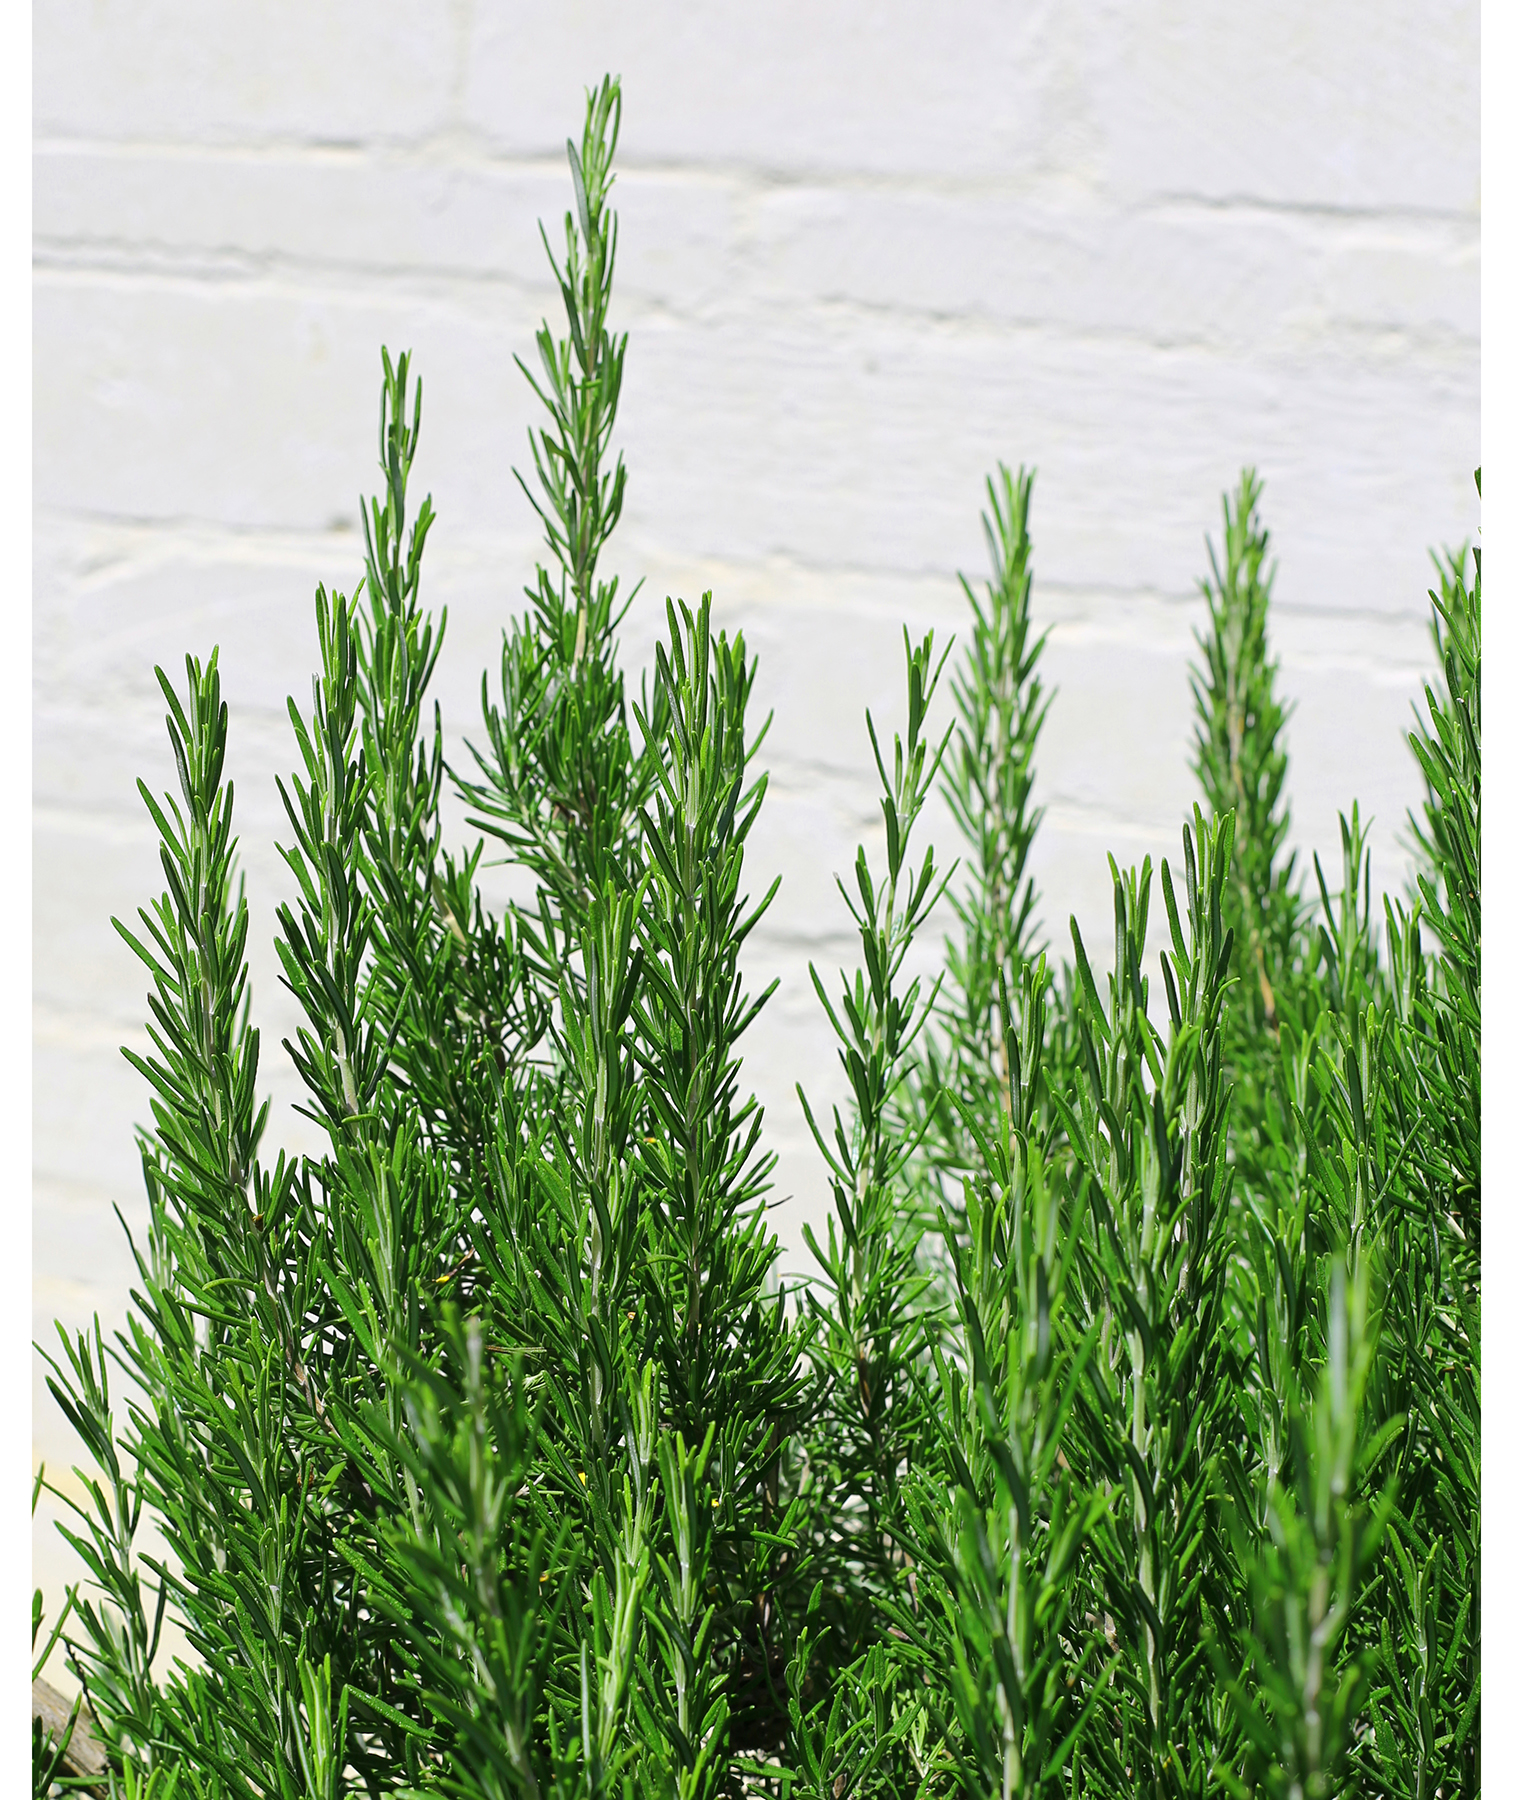 Rosemary growing in the yard